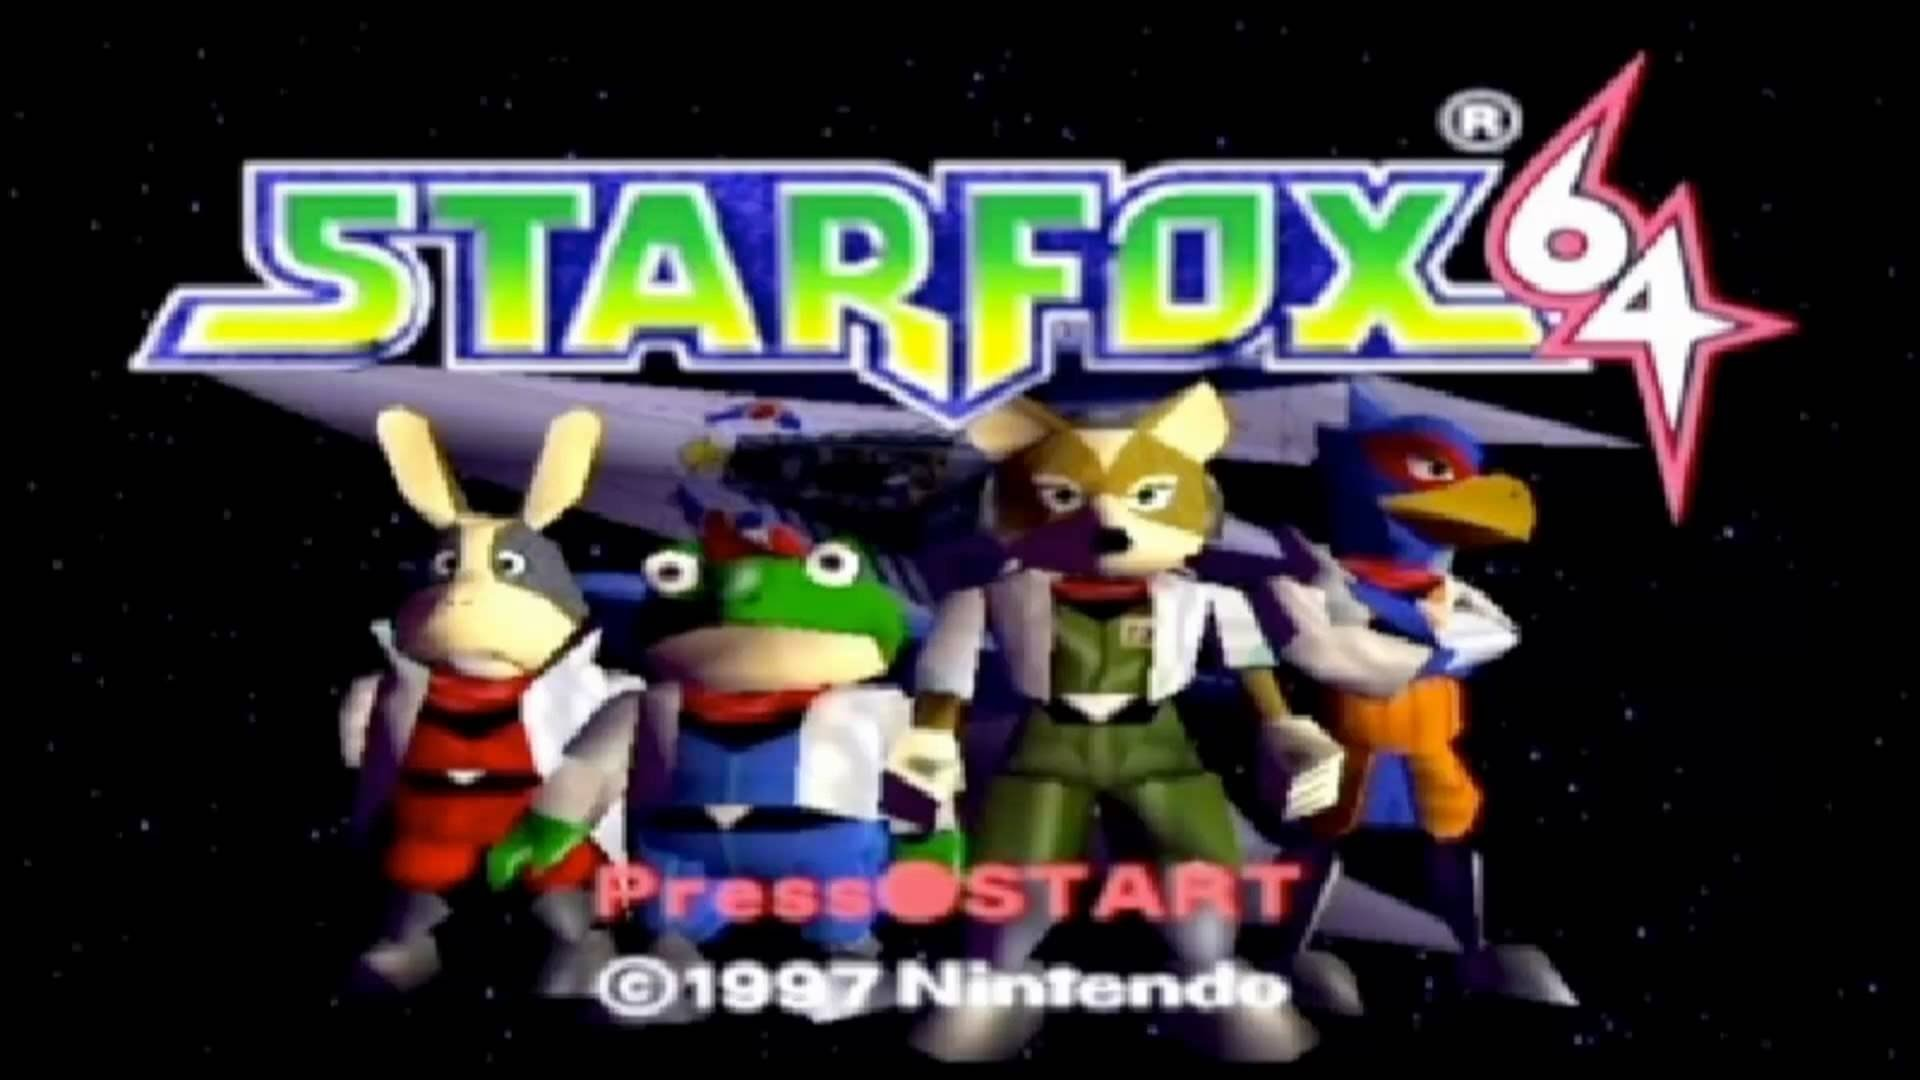 Star Fox 64 review